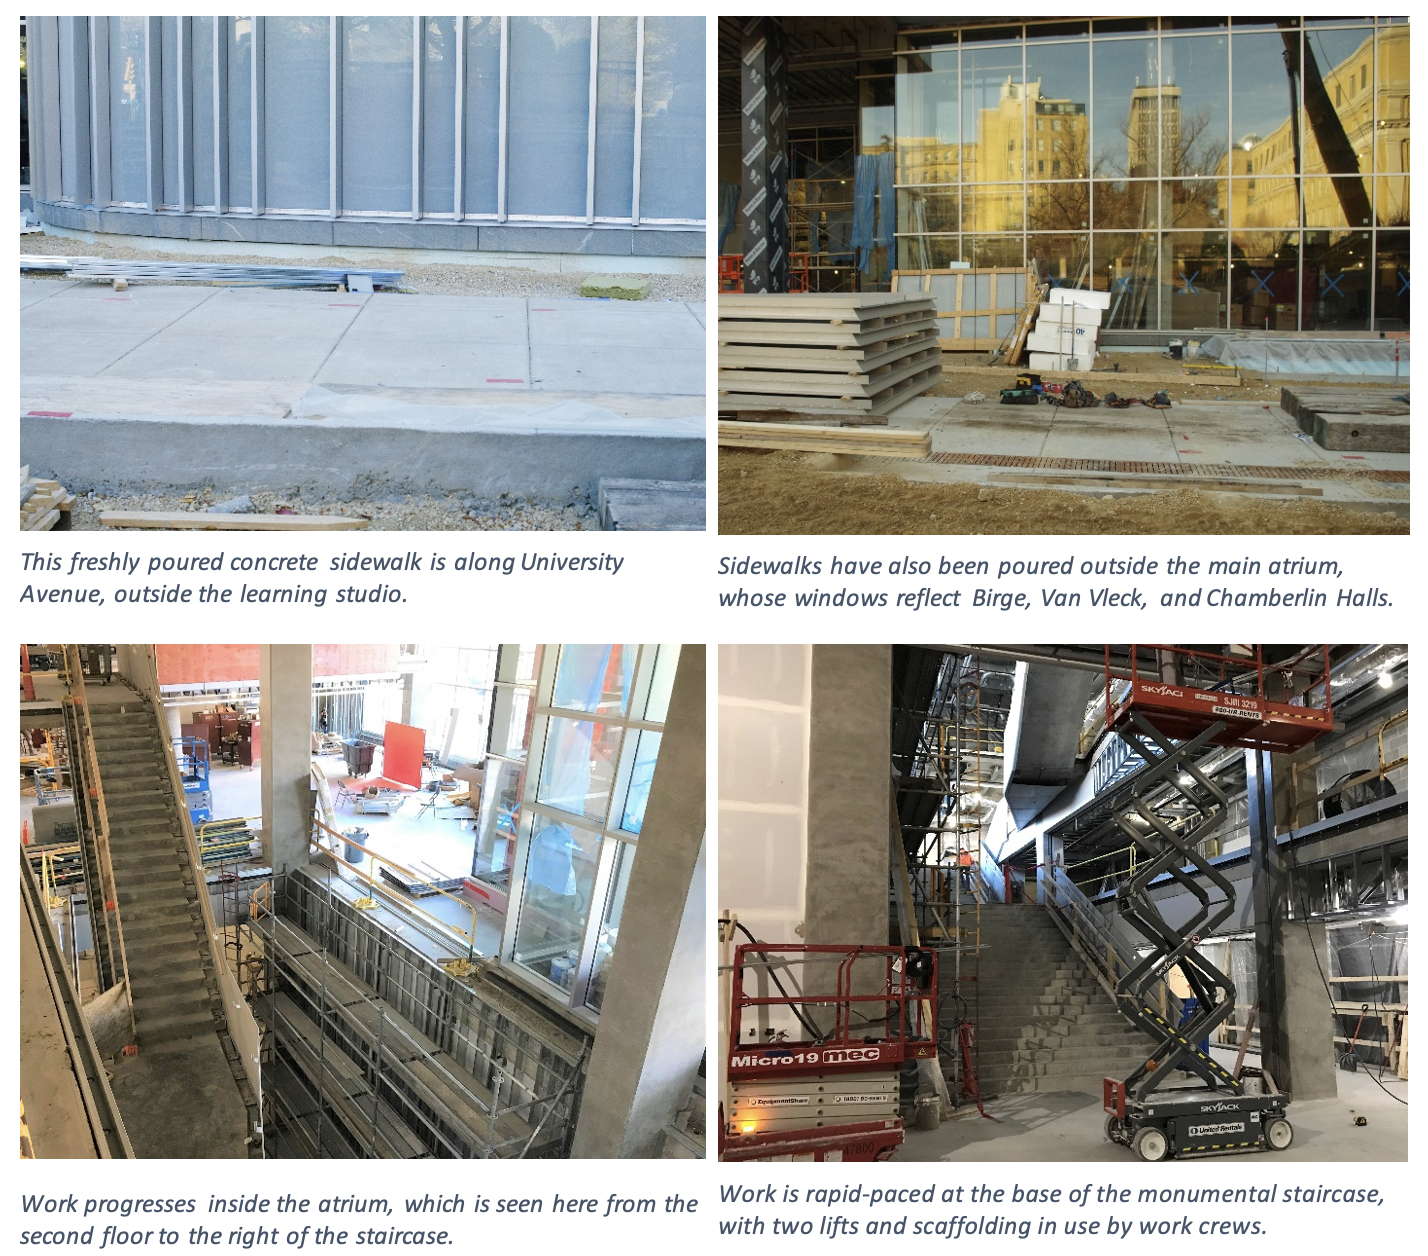 This freshly poured concrete sidewalk is along University Avenue, outside the learning studio (top left image). Sidewalks have also been poured outside the main atrium, whose windows reflect Birge, Van Vleck, and Chamberlin Halls (top right image). Work progresses inside the atrium, which is seen here from the second floor to the right of the staircase (bottom left image). Work is rapid-paced at the base of the monumental staircase, with two lifts and scaffolding in use by work crews (bottom right image)..